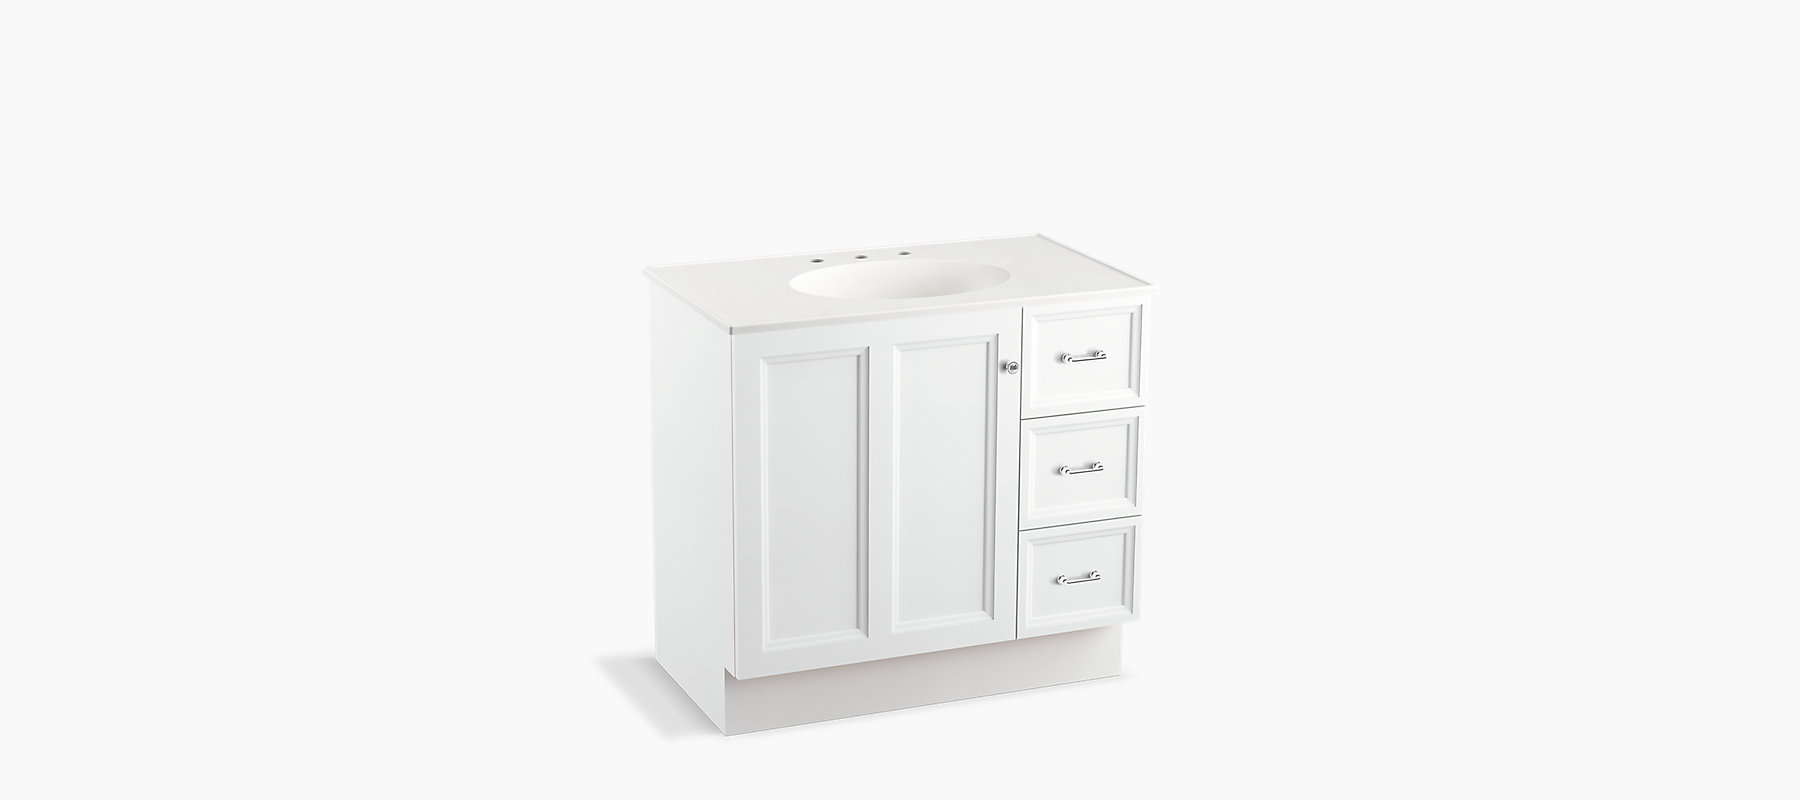 K 99520 Tkr Damask 36 Inch Vanity With Toe Kick 1 Door 3 Drawers Kohler